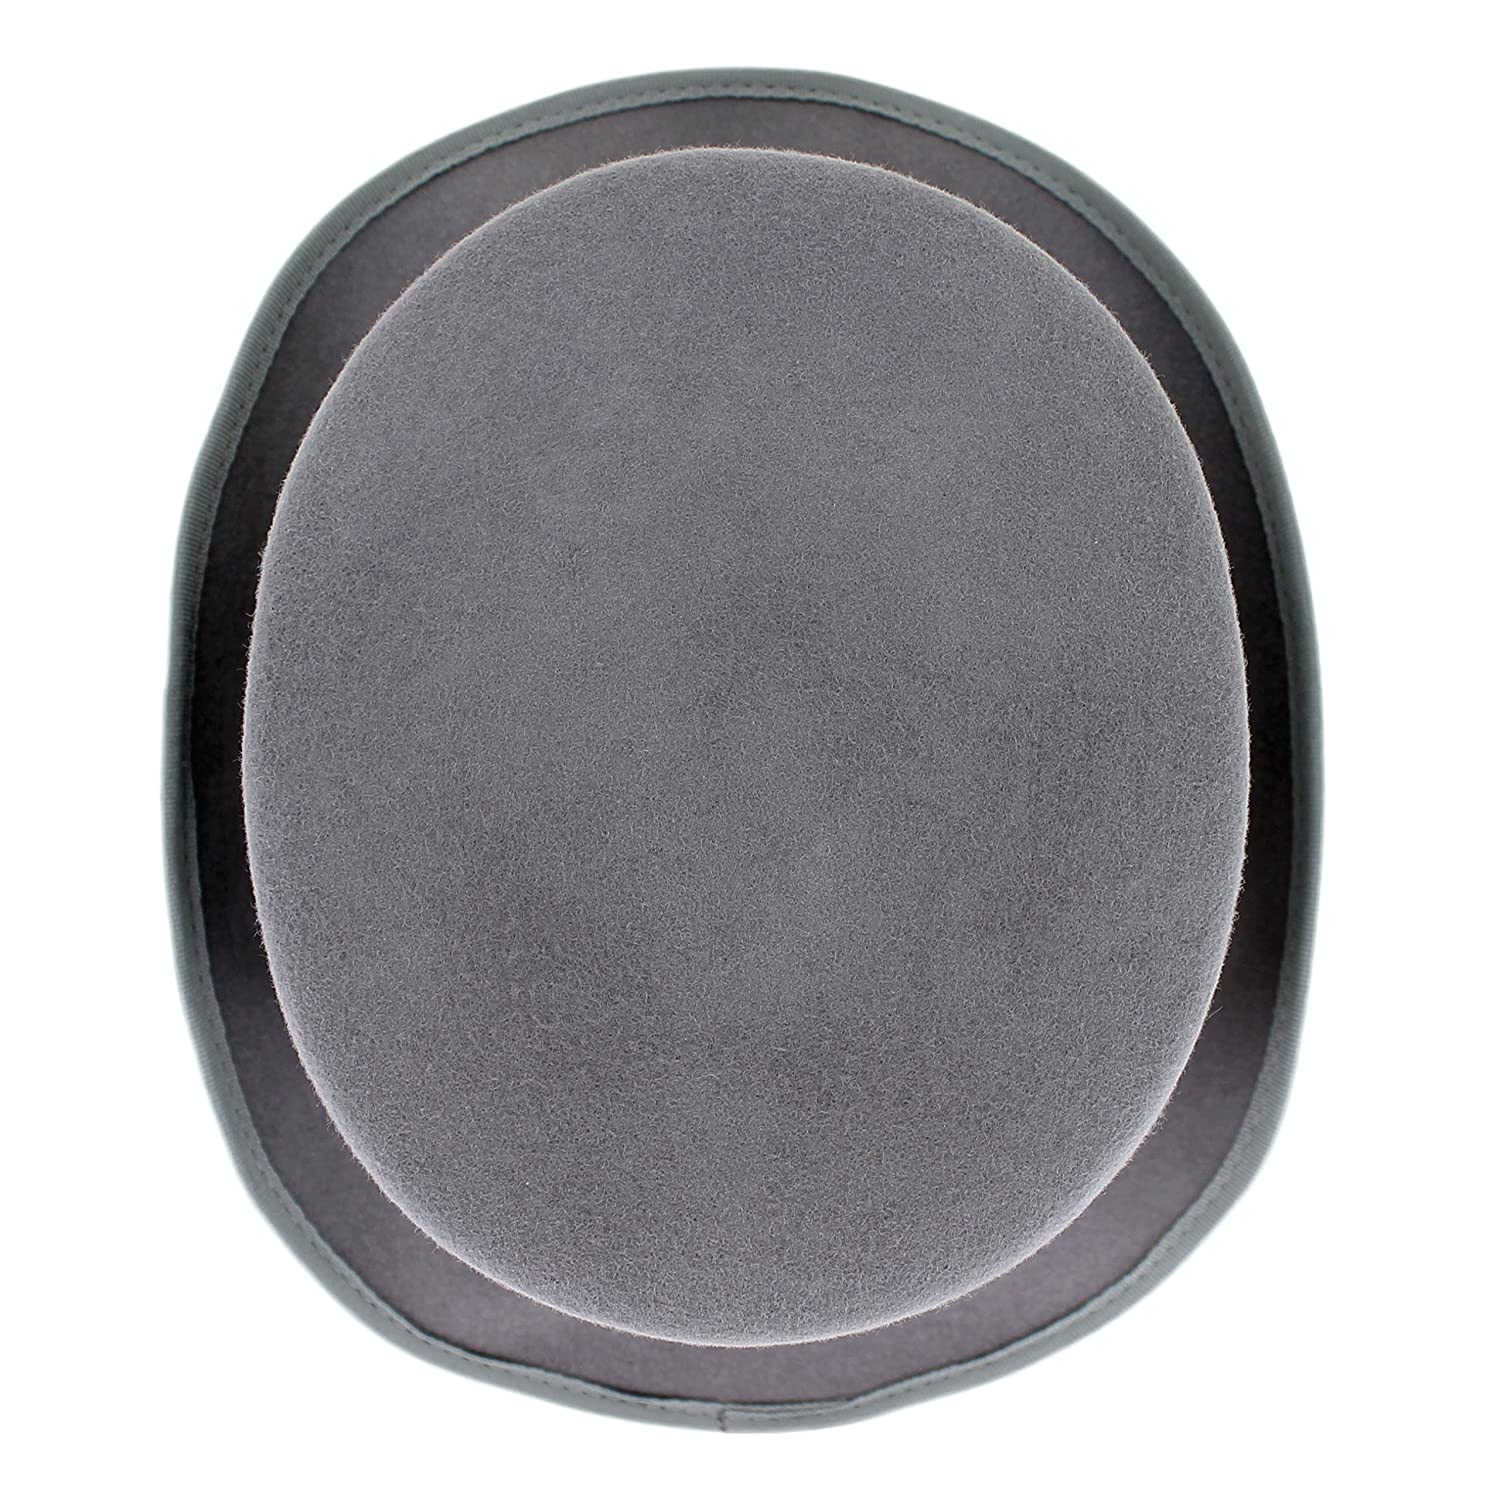 Small, Grey Crushable Top Hat Soft Mens 100/% Wool Felt in Black and Grey